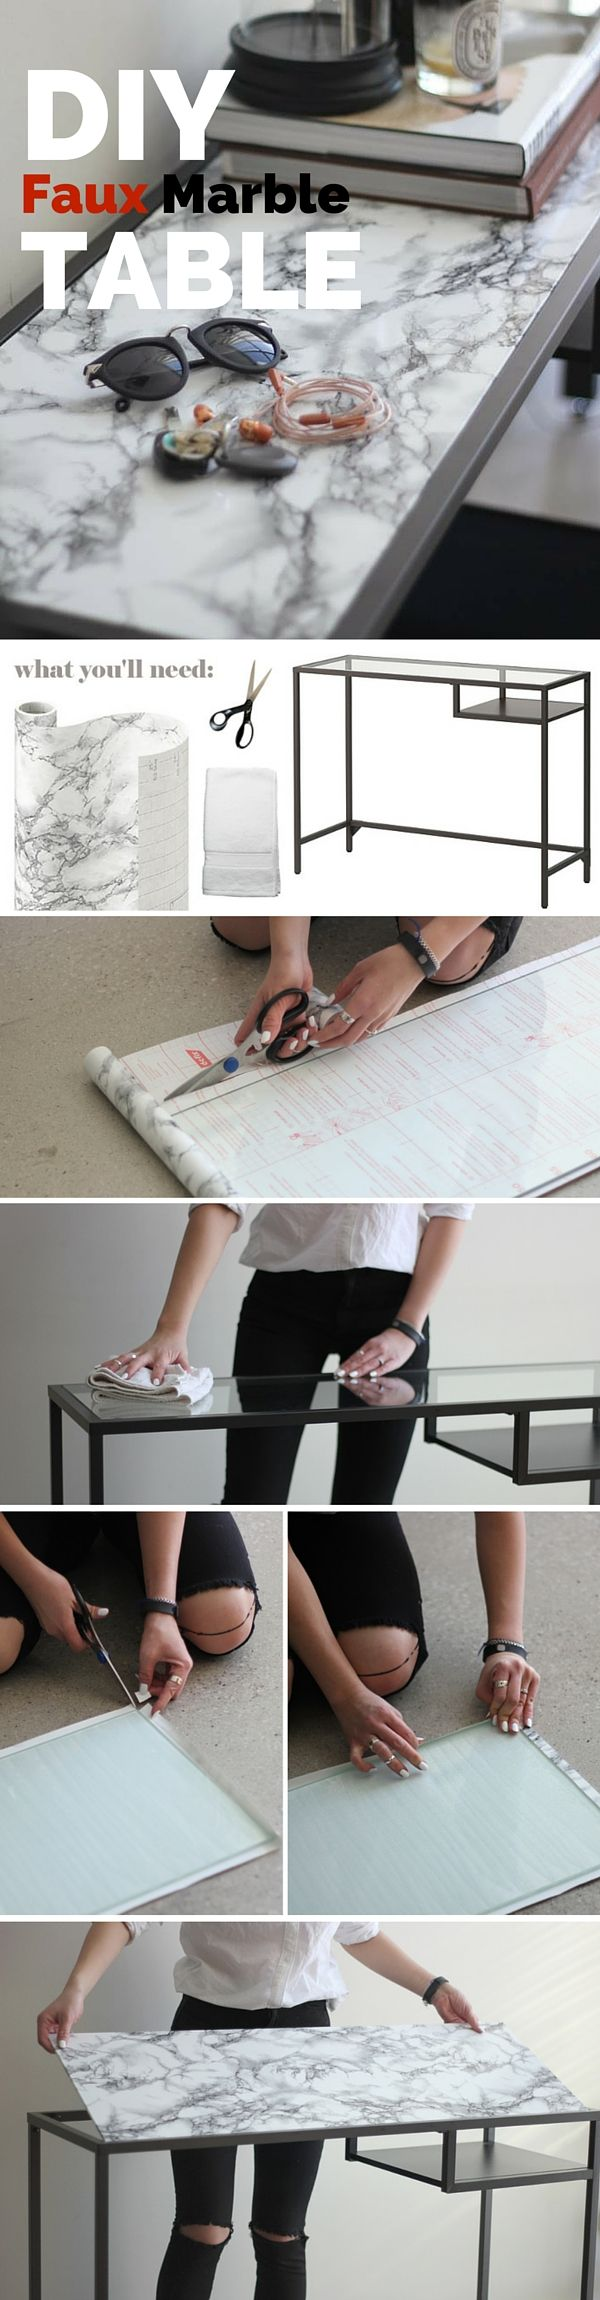 Check out the tutorial: #DIY Faux Marble Table #crafts #decor